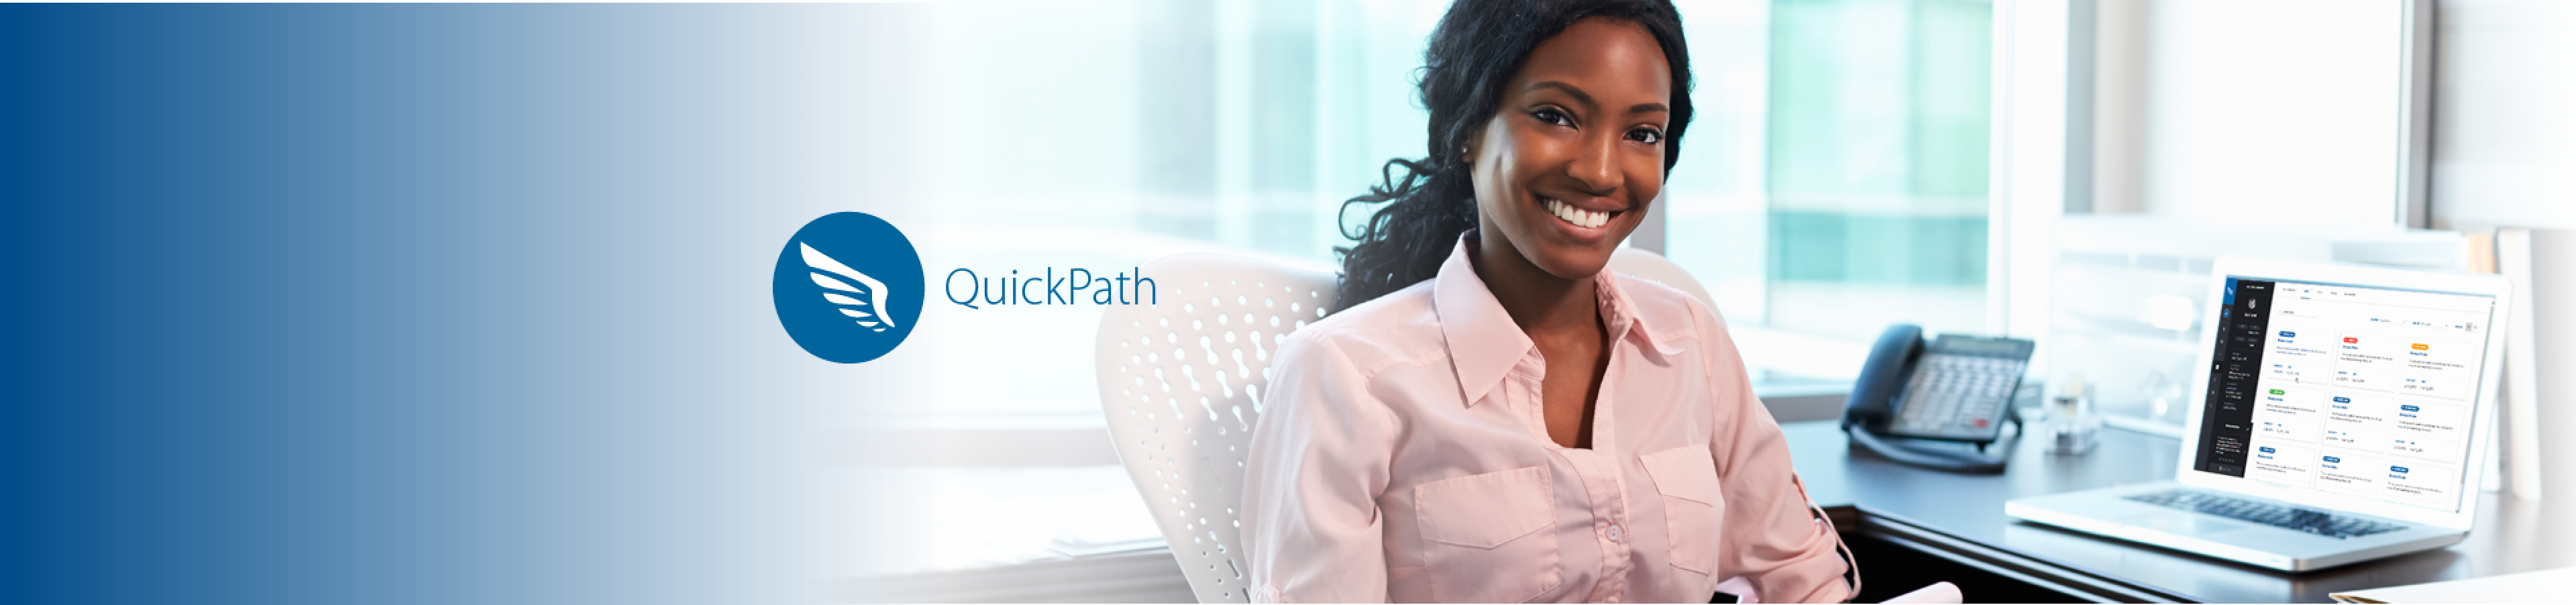 A smiling African-American woman sits at her desk; the QuickPath logo is to the left of the image